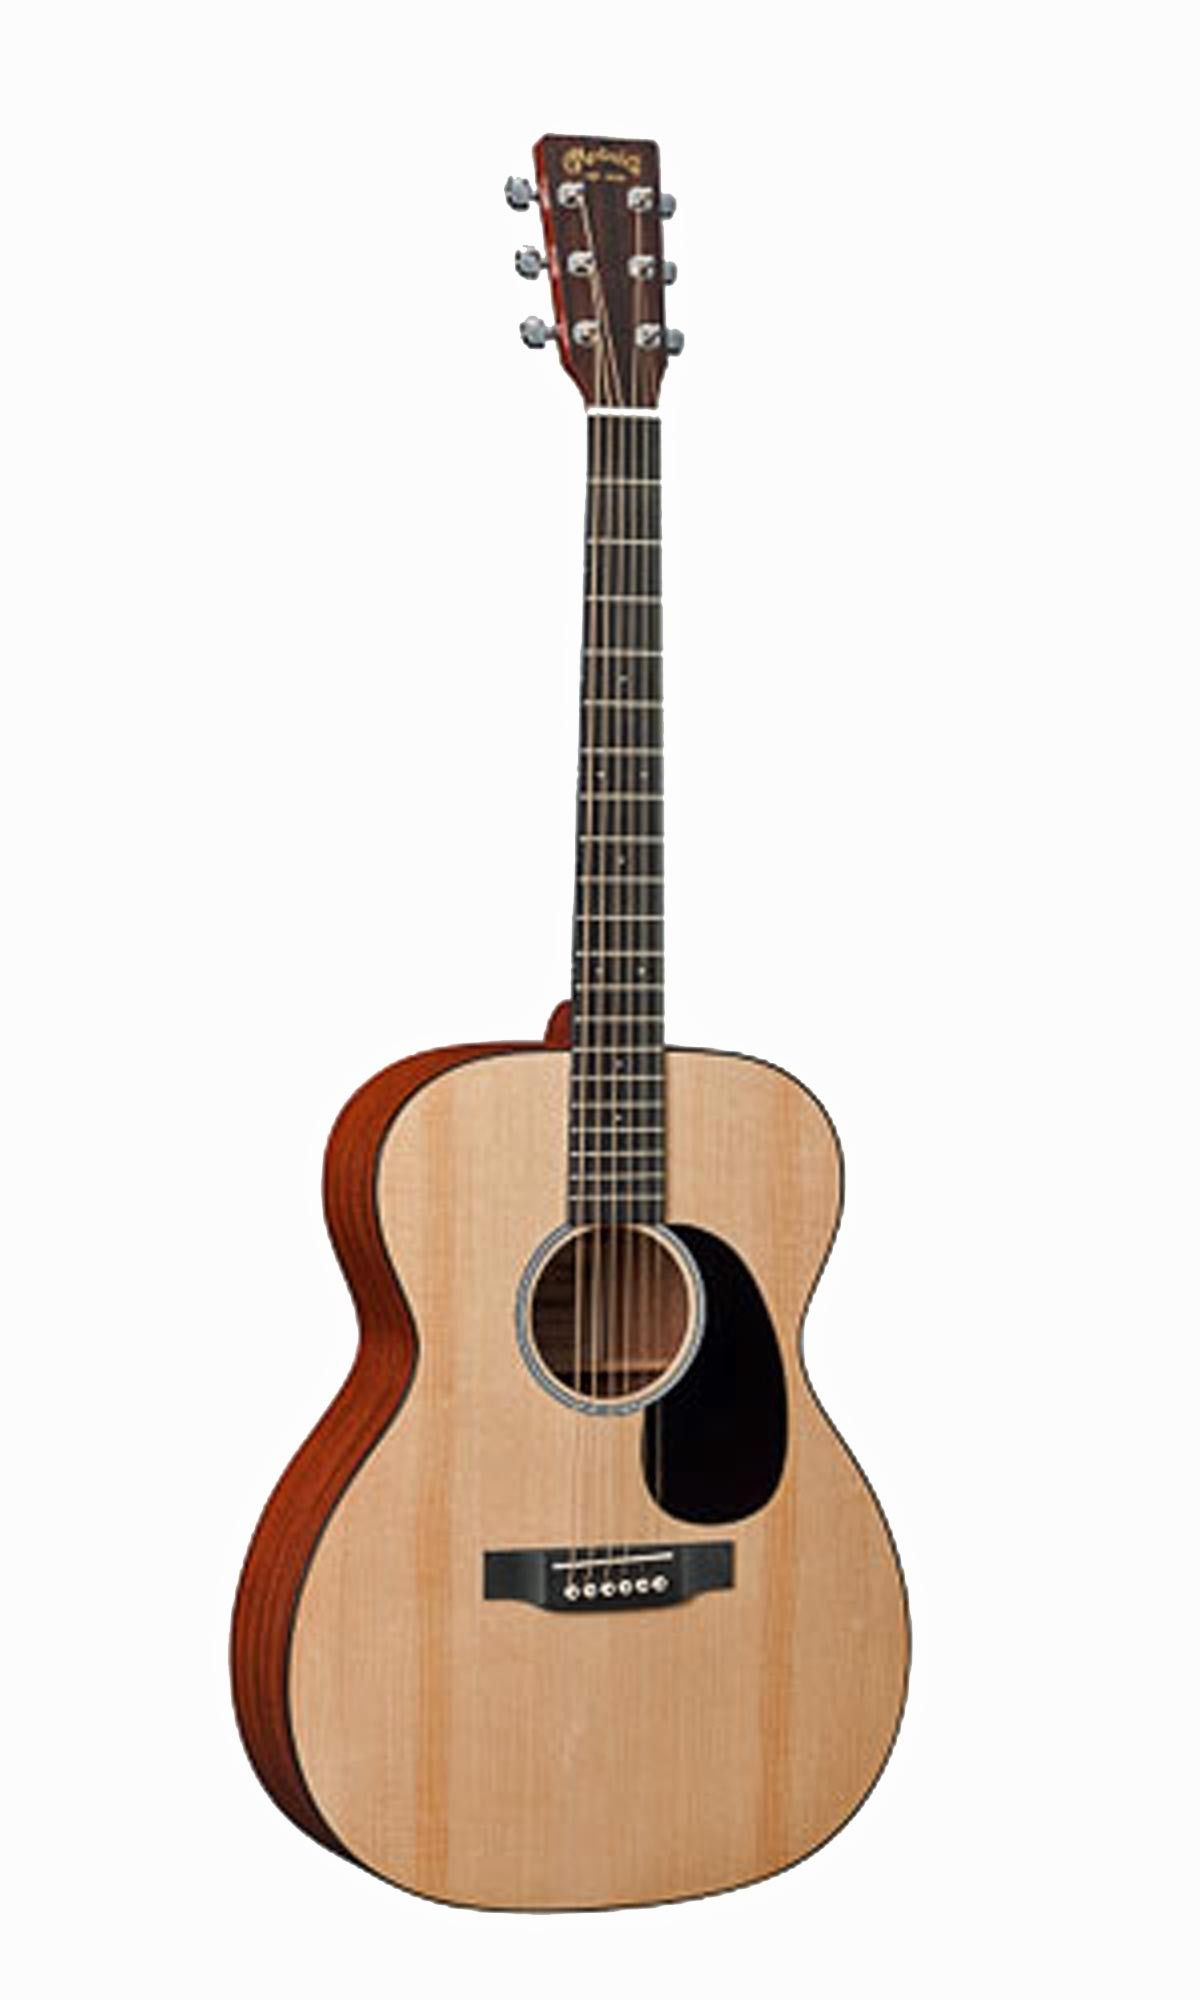 Martin 000 Rsgt Road Series Electro Acoustic Guitar Electro Acoustic Guitar Guitar Acoustic